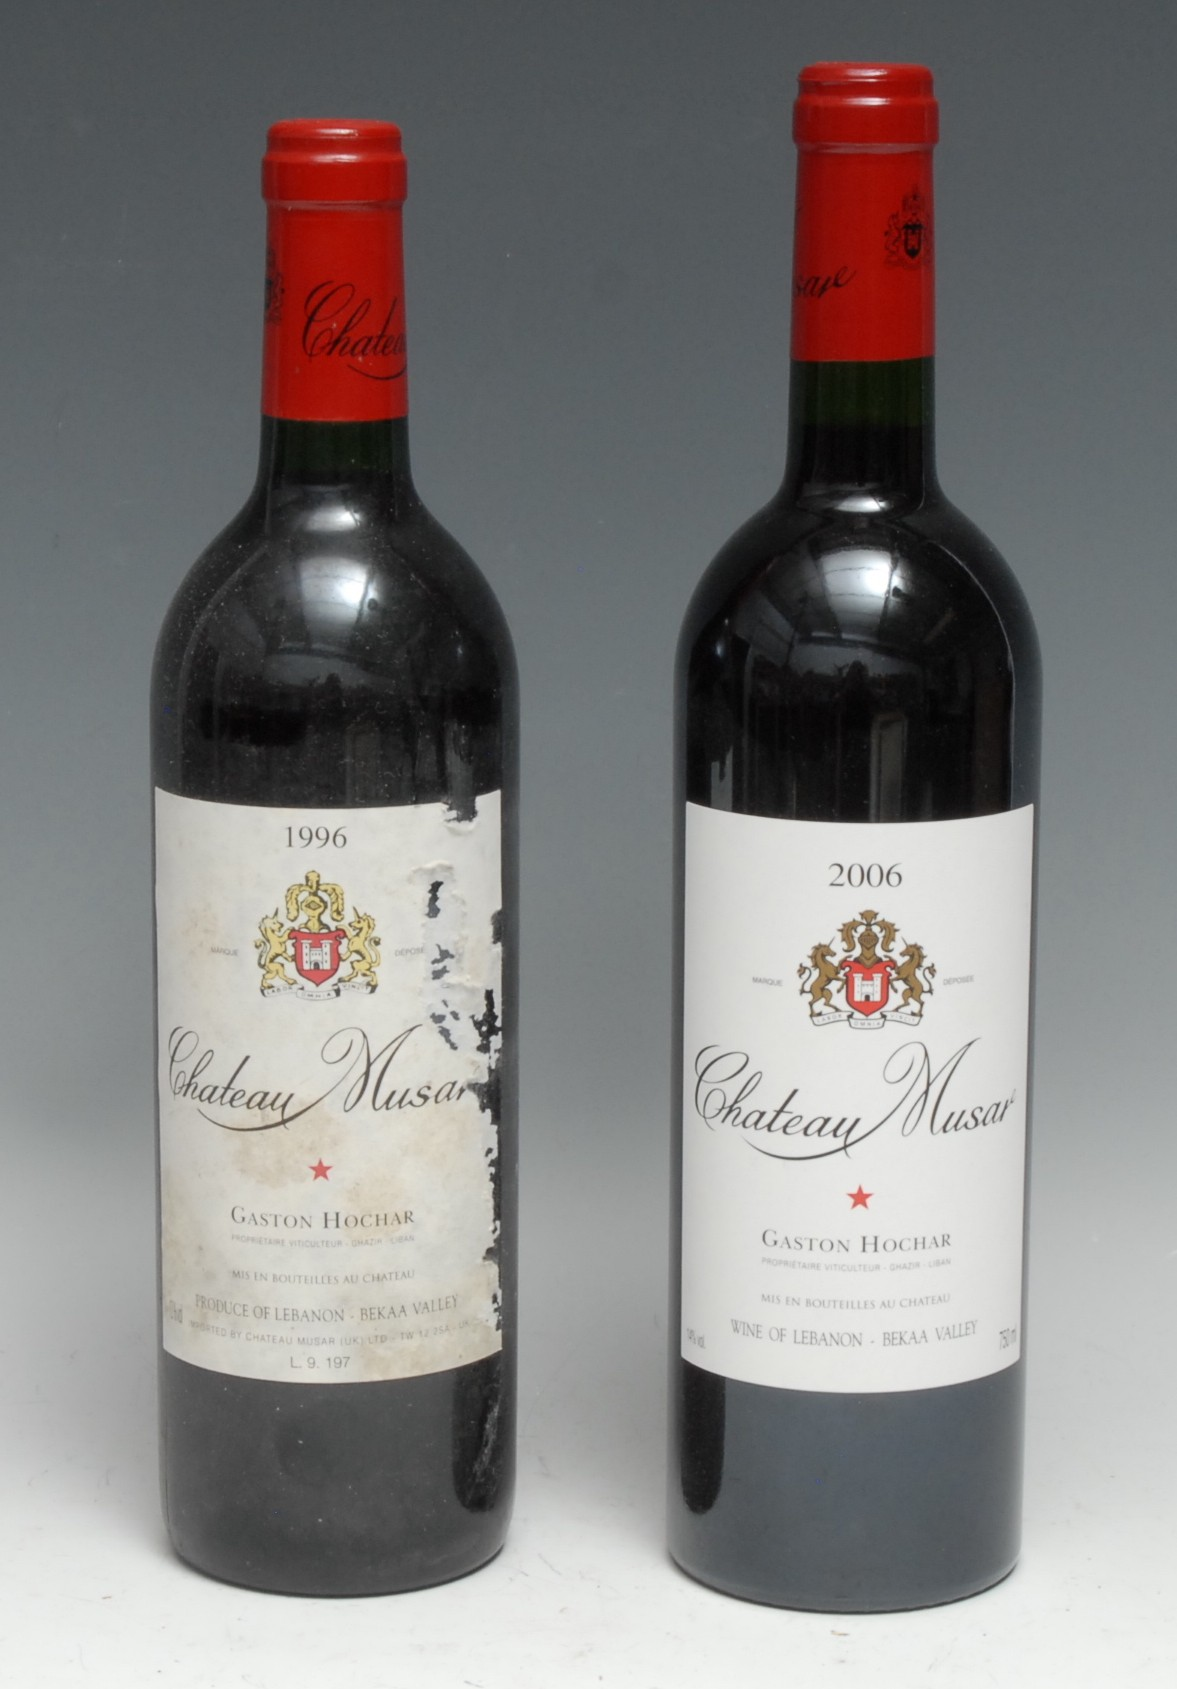 Chateau Musar 1996, [750ml], 13%, labels scuffed, level at neck, seal intact, (1); another, 2006,